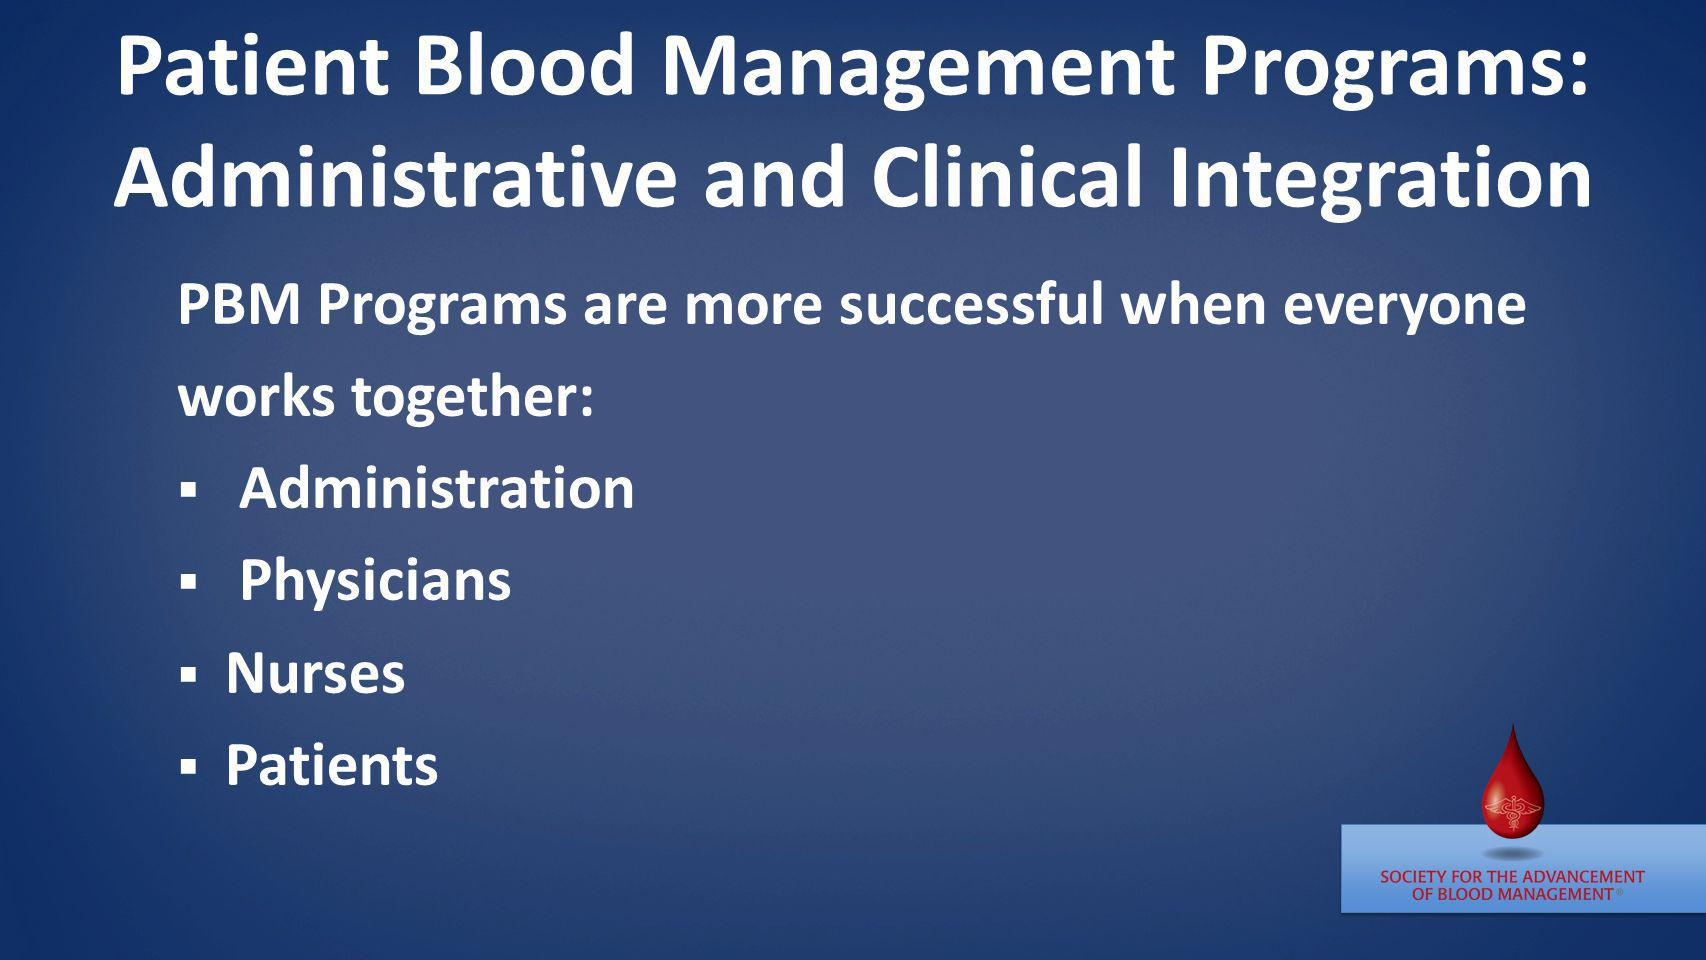 Patient Blood Management Programs: Administrative and Clinical Integration